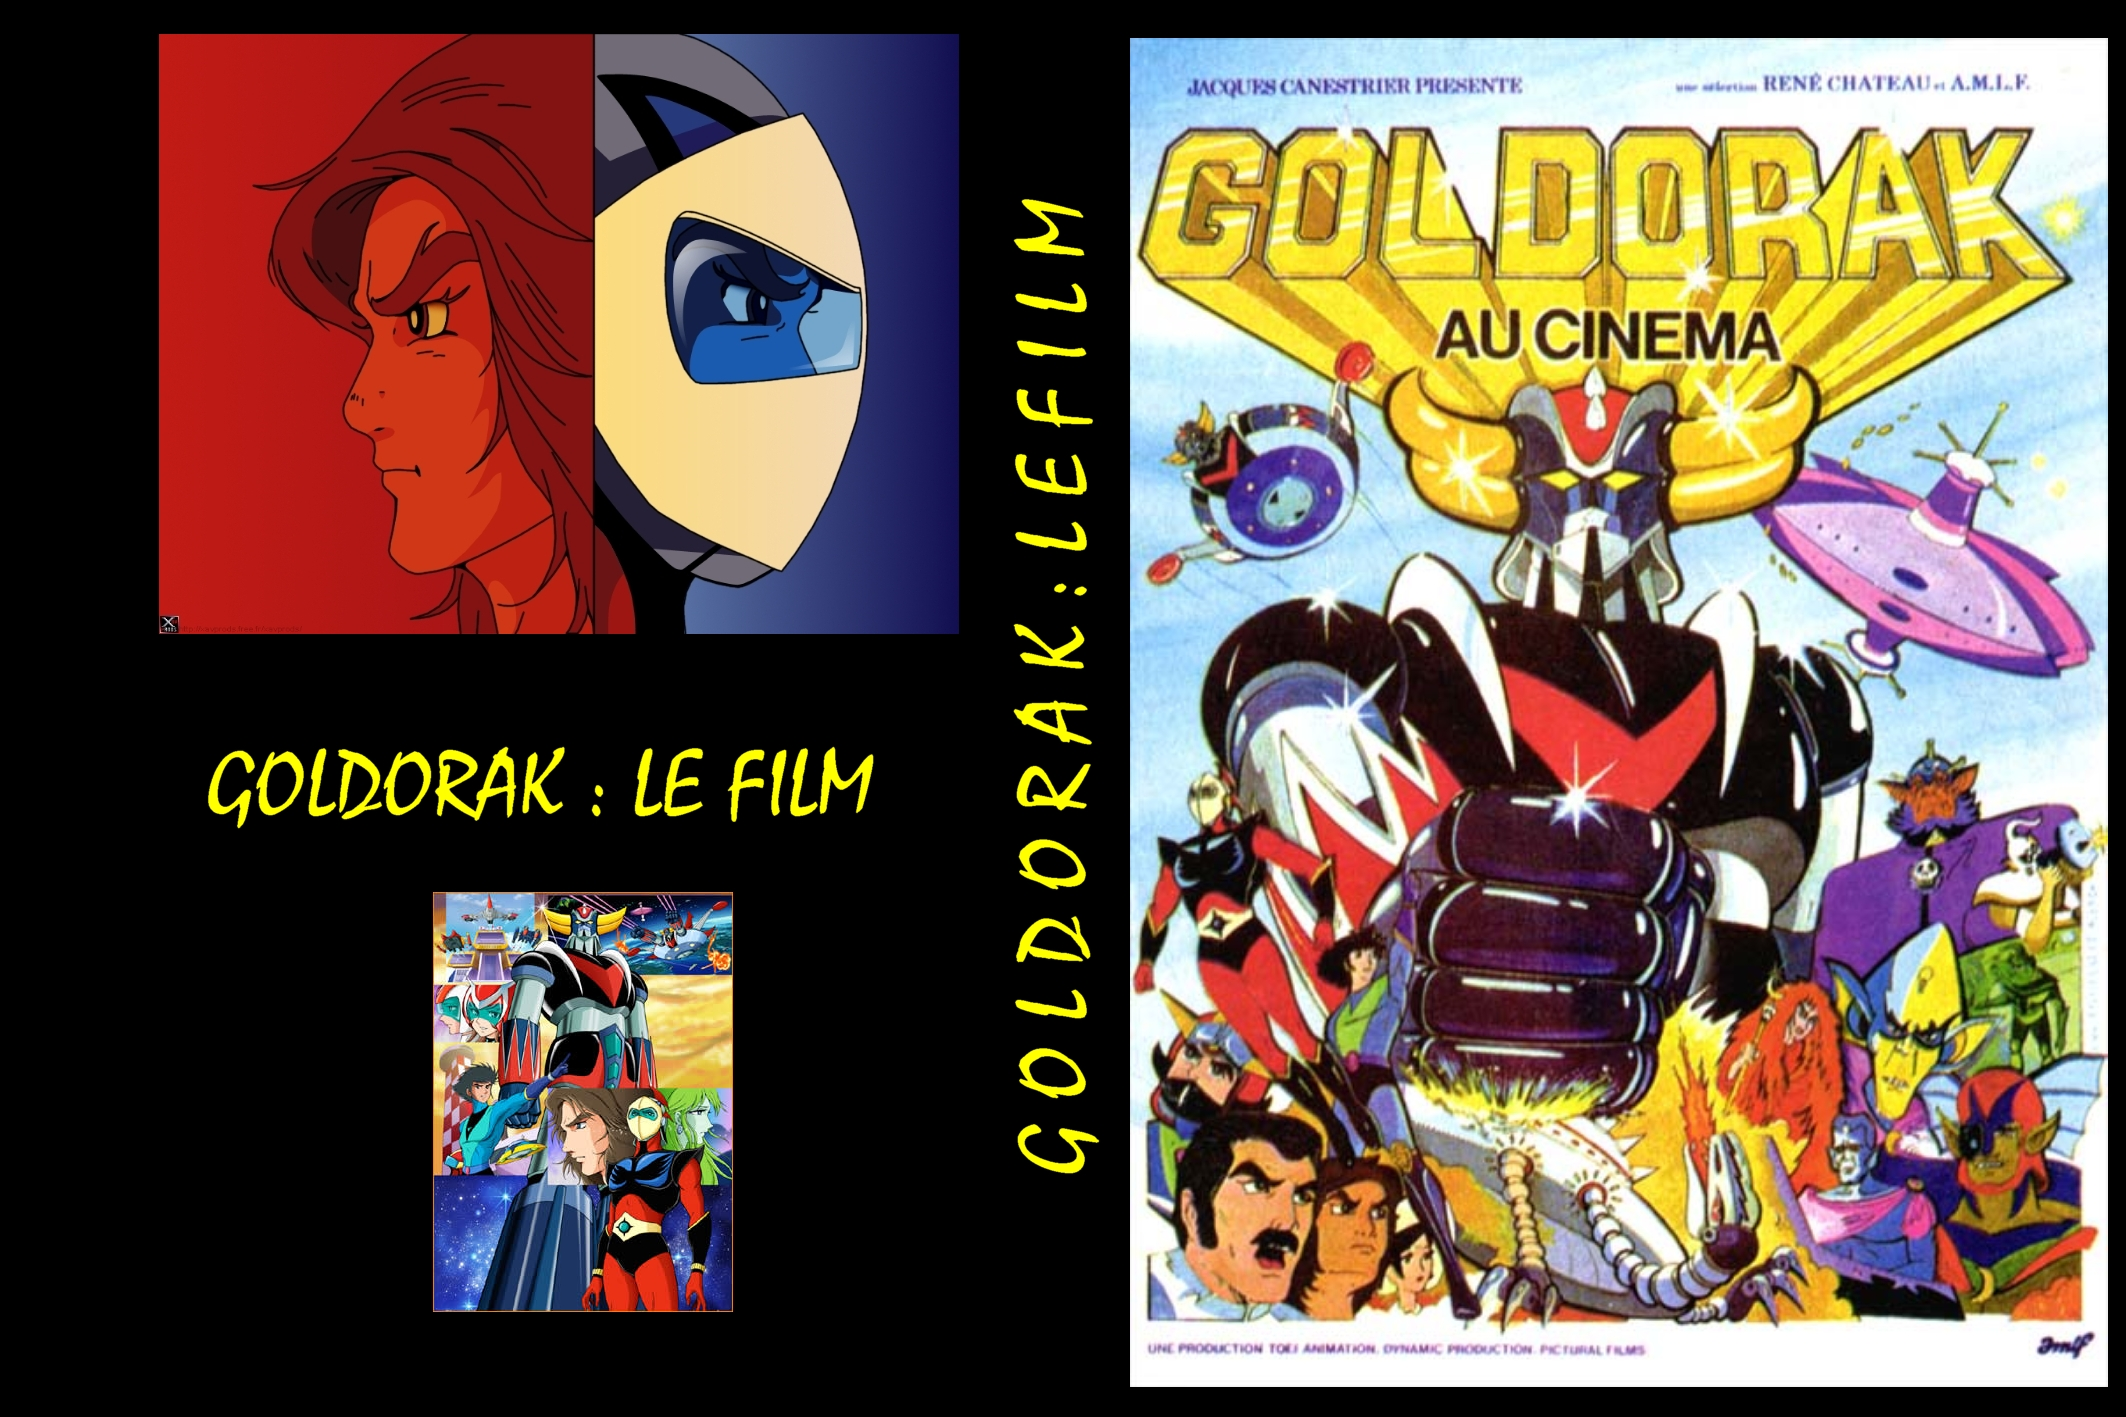 GOLDORAK-le film